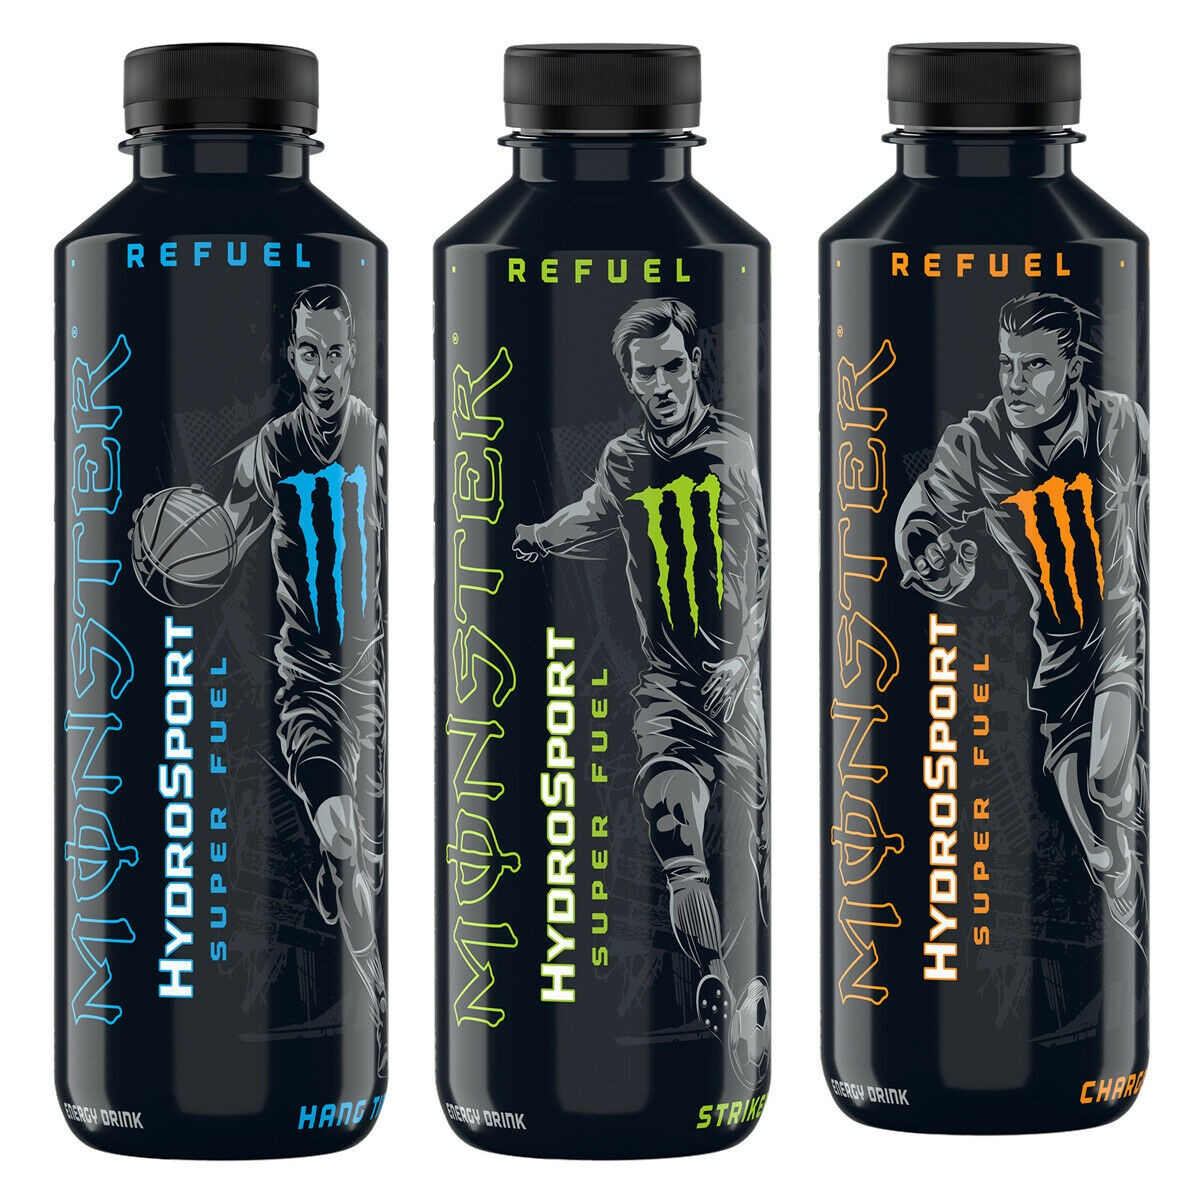 monster-refuel-hydrosport-super-fuel-energy-drink-zero-sugar-fitness-drink-650ml-sorten